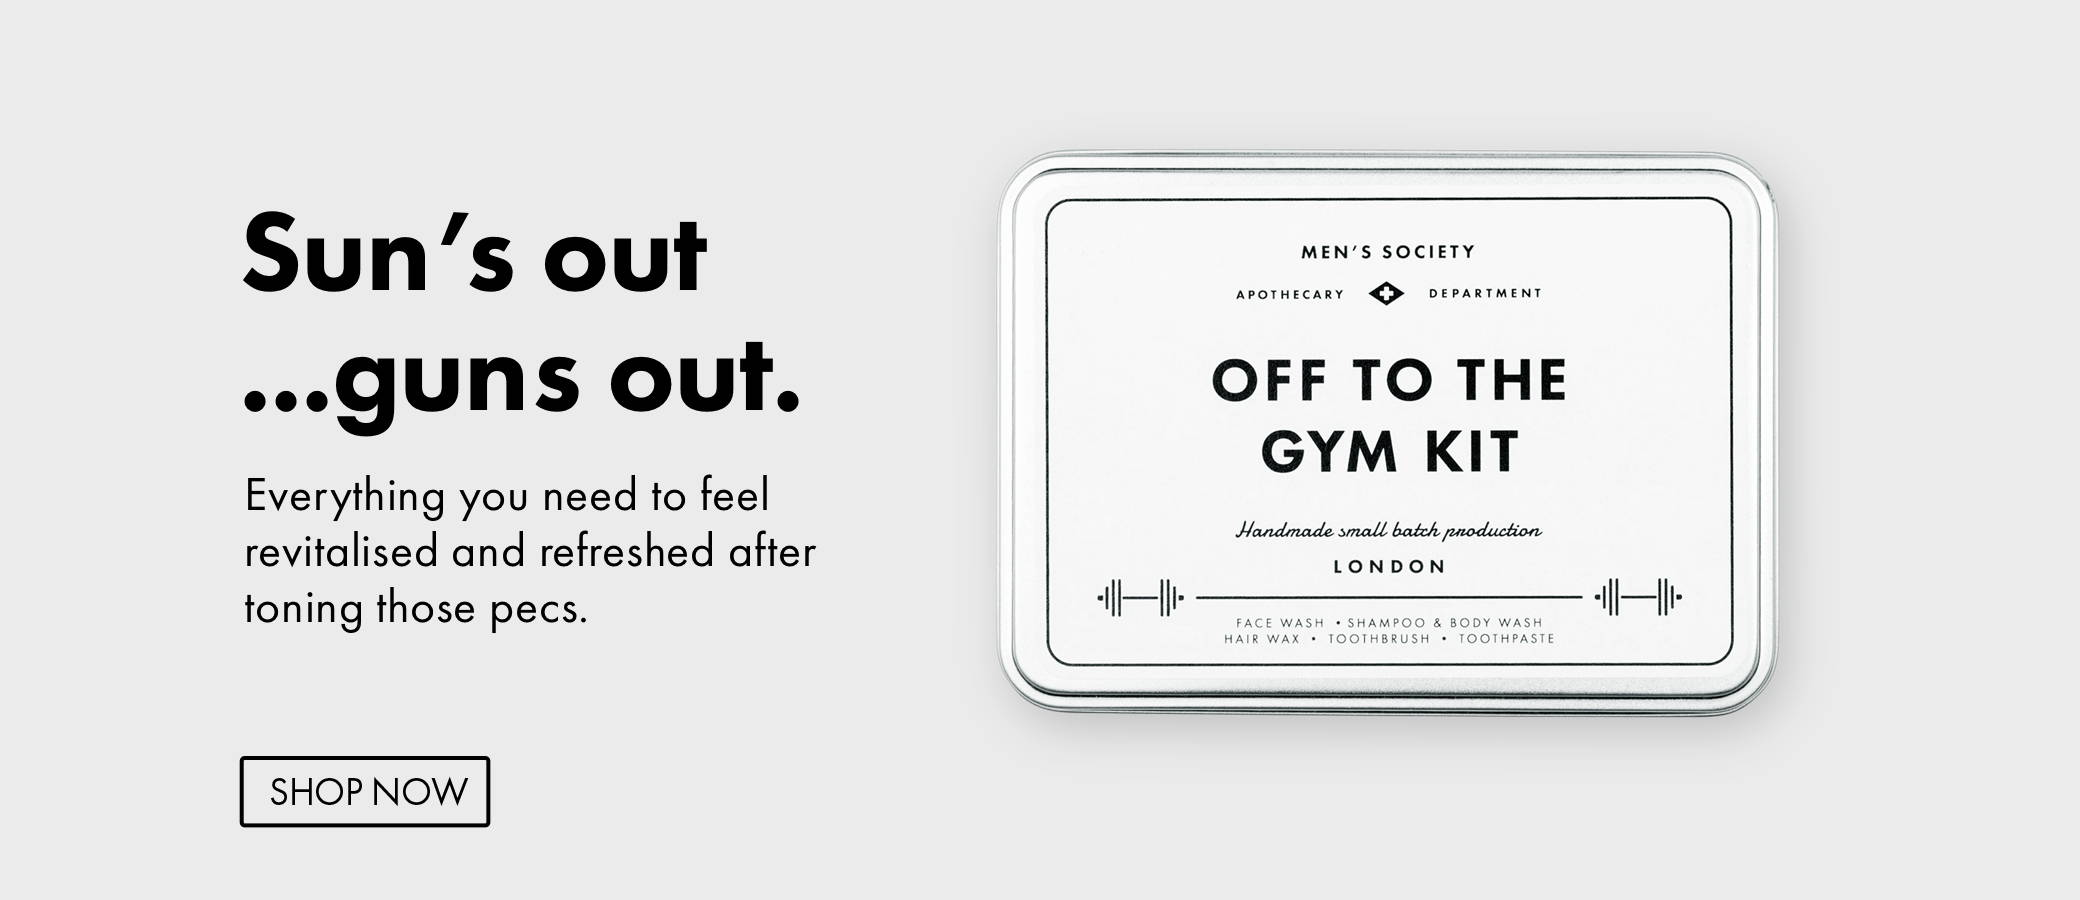 Off to the gym kit | Gifts for men